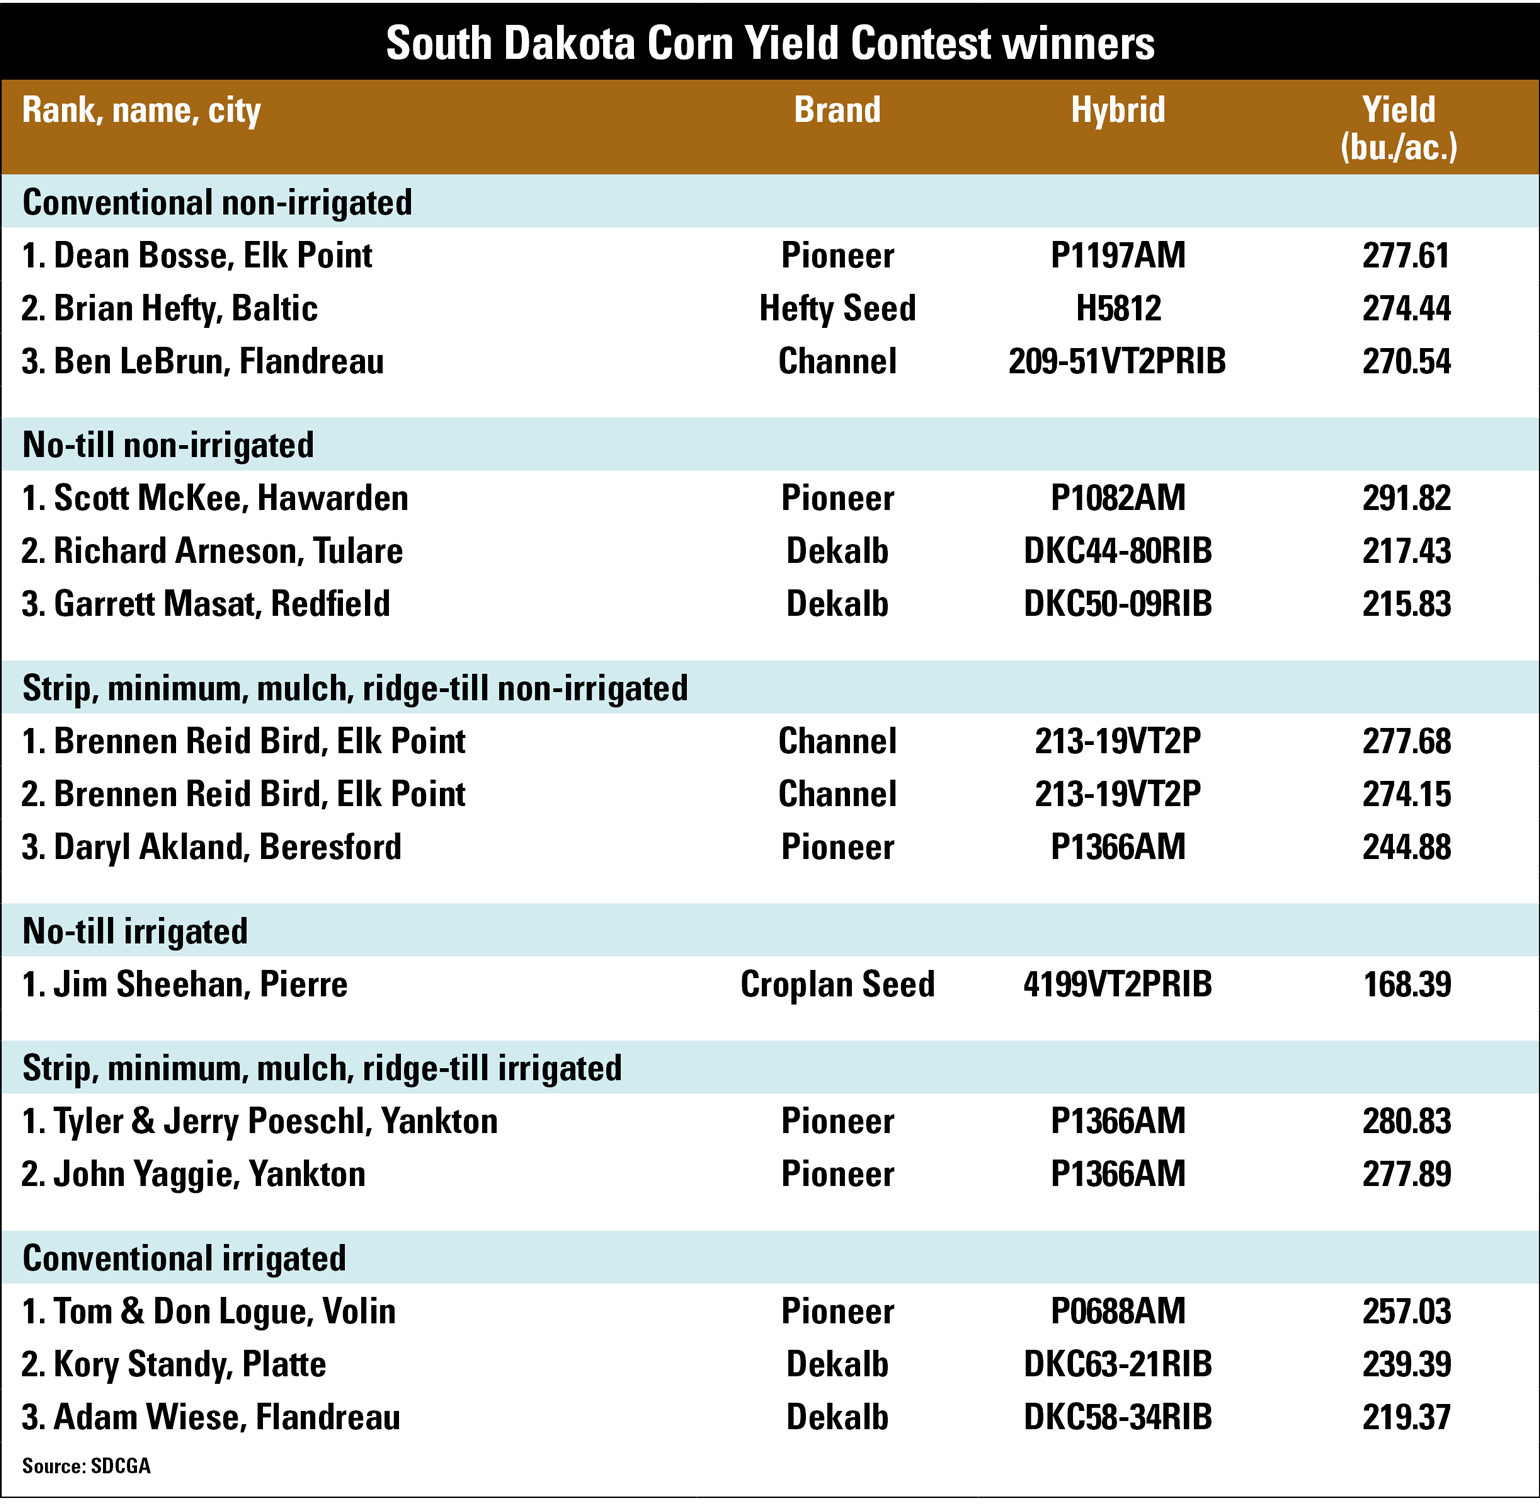 South Dakota Corn Yield Contest winners